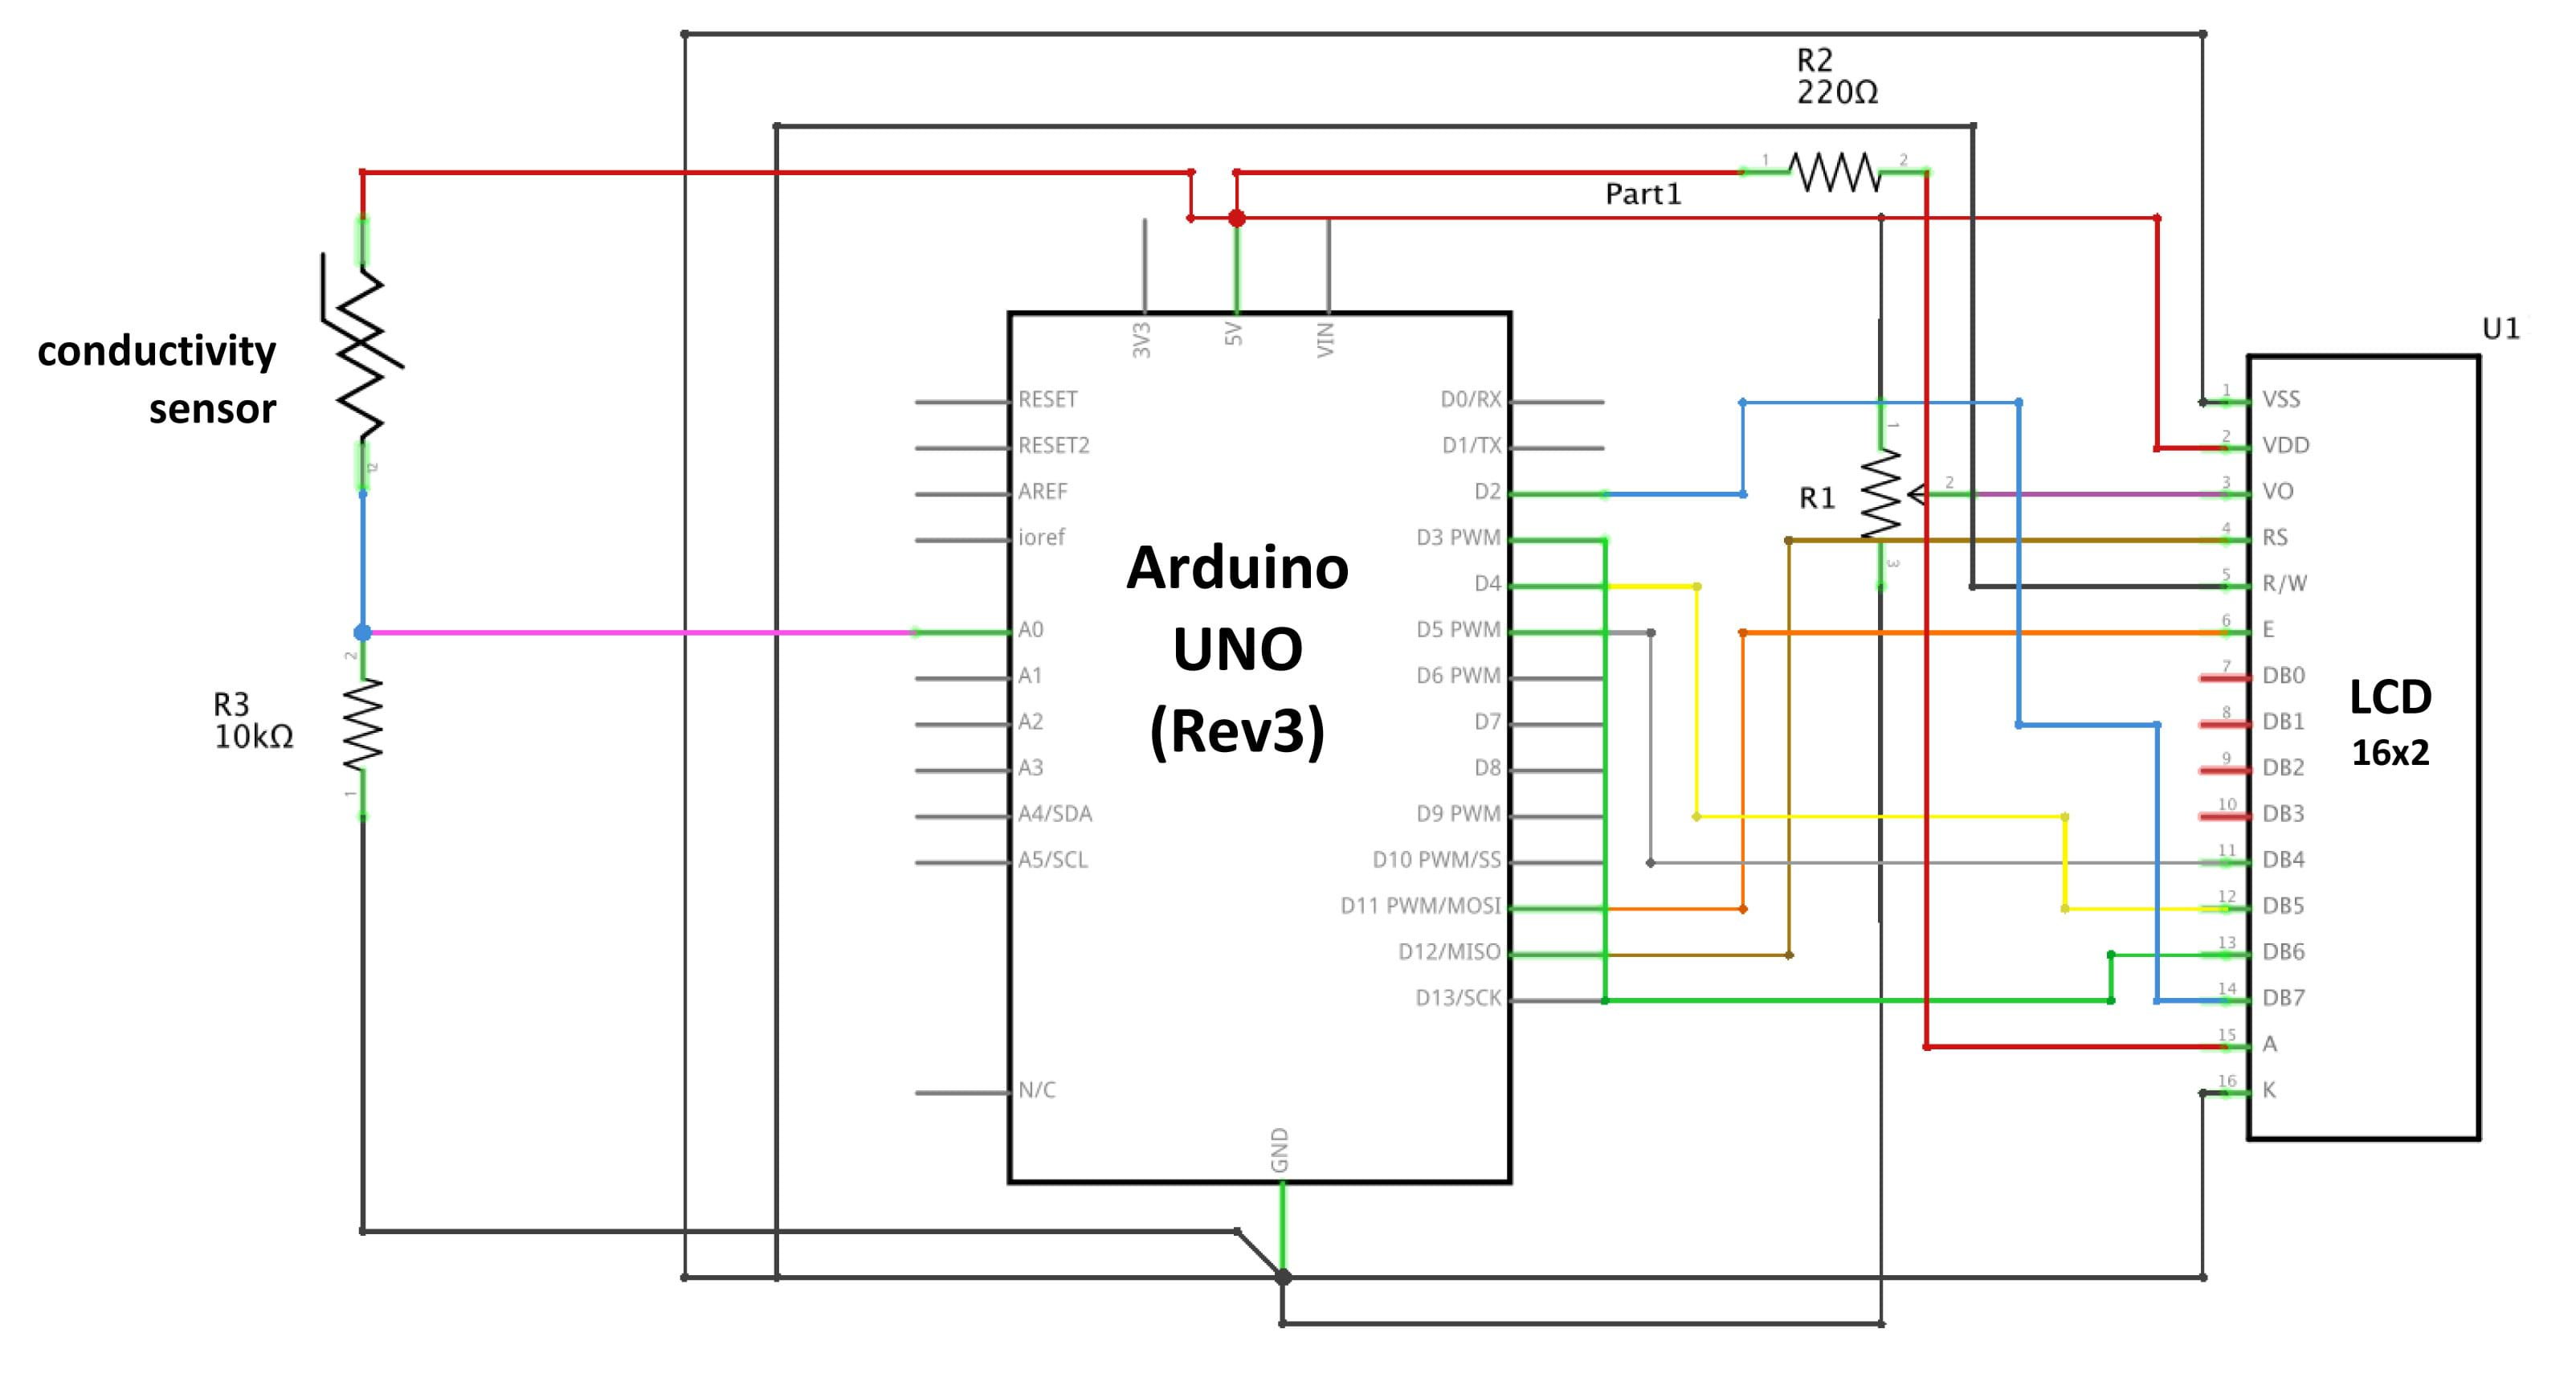 Build And Test A Conductivity Probe With Arduino Activity Reading Electrical Schematics Base Station Youtube Diagram Shows The Circuitry Needed To Connect An Uno Breadboard That Has